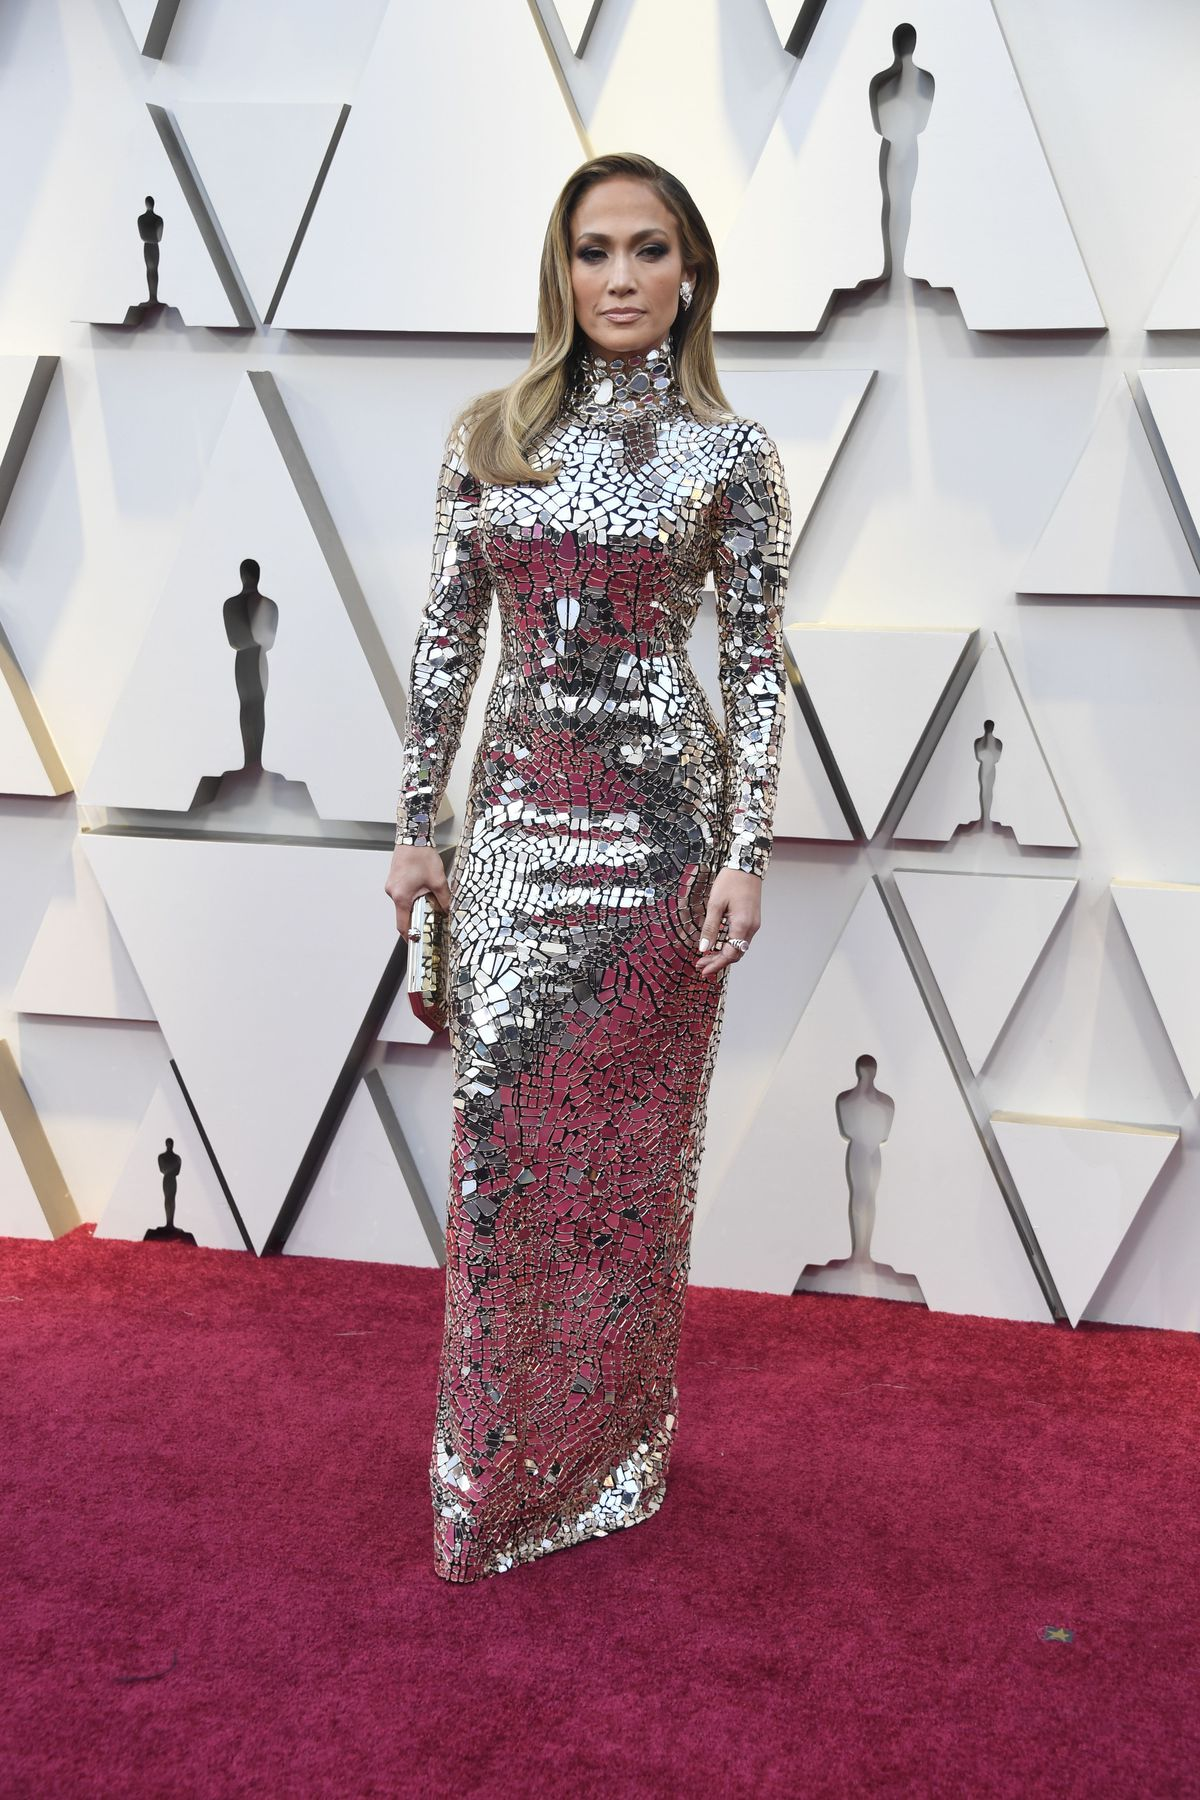 Jennifer Lopez attends the Academy Awards on February 24, 2019 in a stunning mirror/mosaic Tom Ford gown. | Frazer Harrison/Getty Images